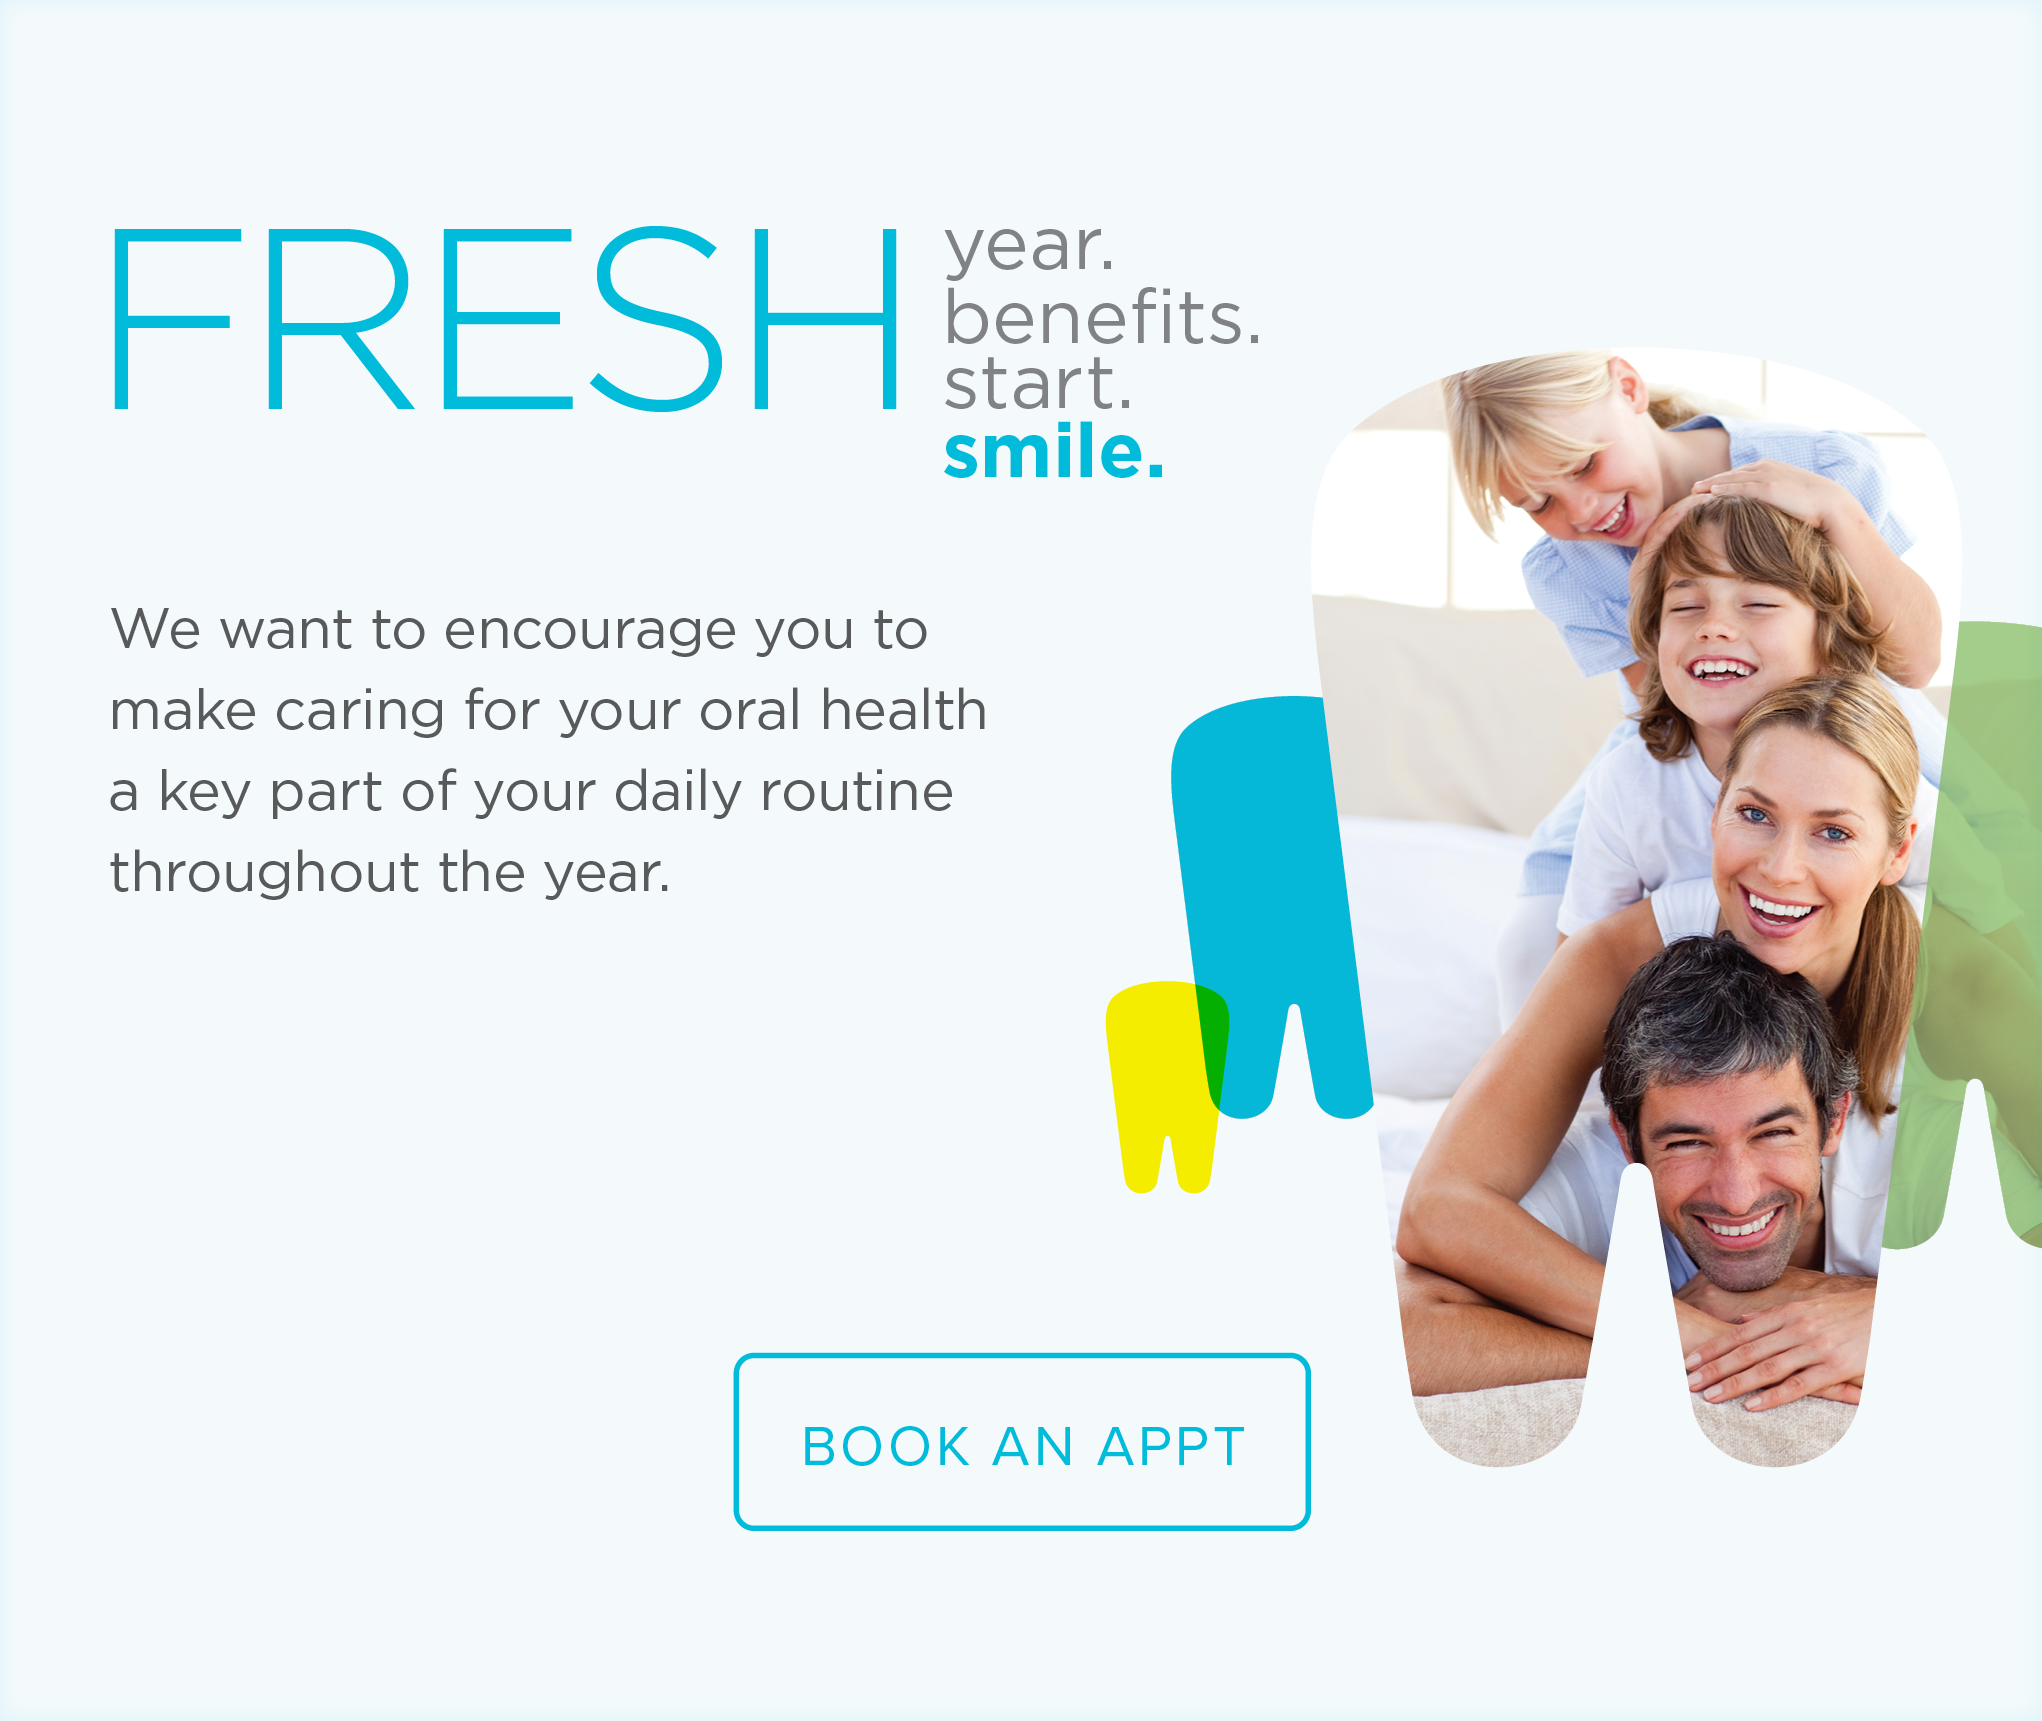 West Covina Dental Group and Orthodontics - Make the Most of Your Benefits